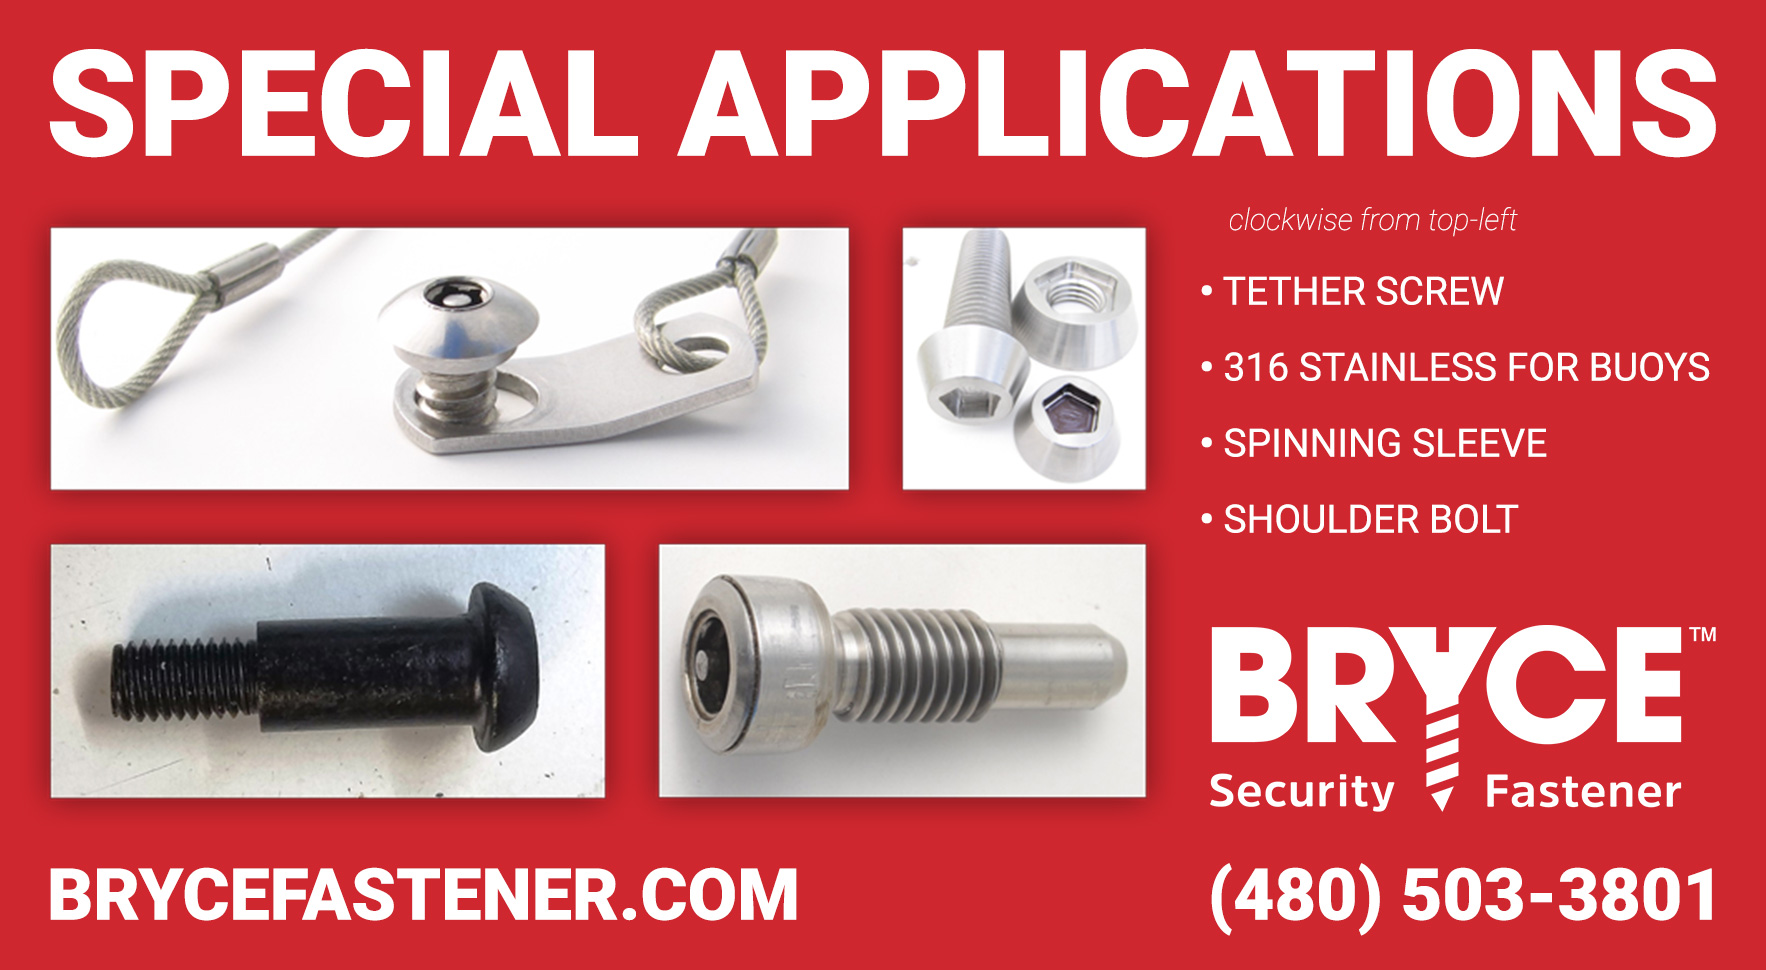 Special Applications Security Fasteners